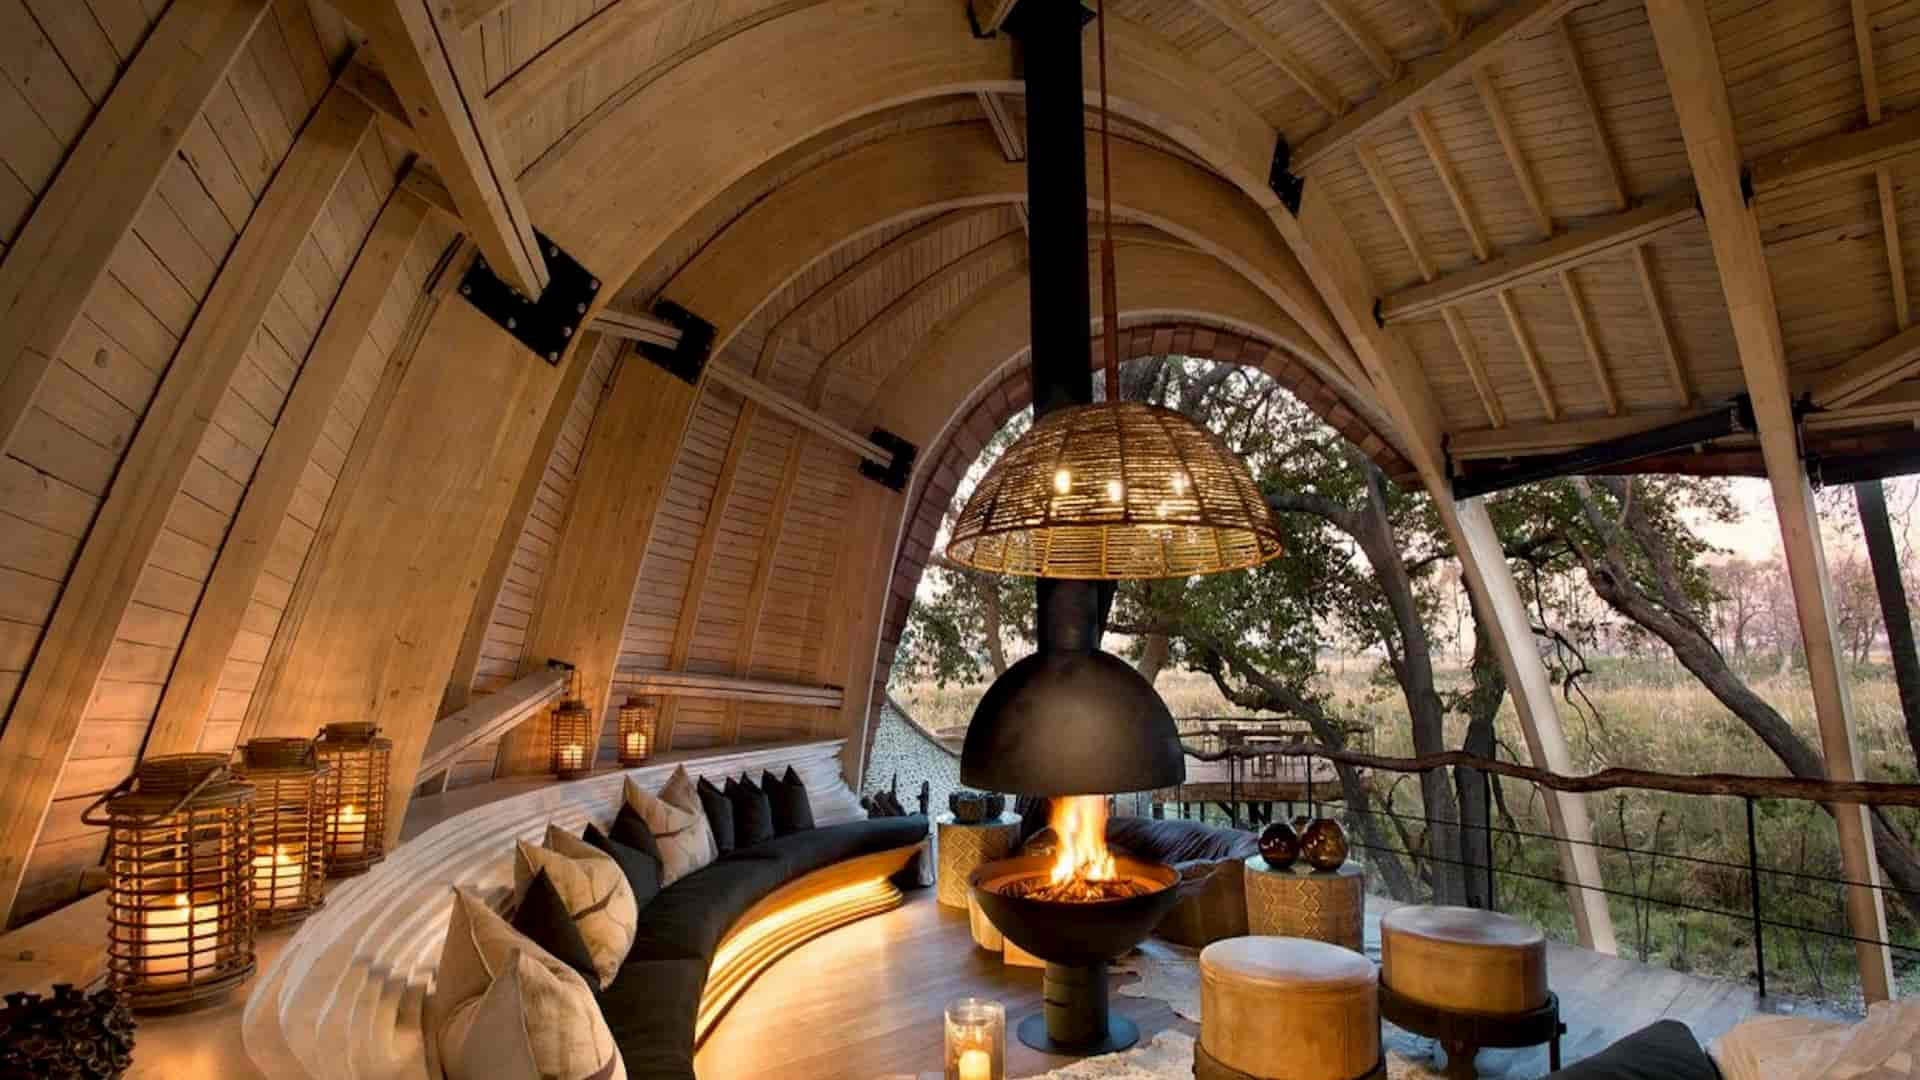 Luxury Safari Lodge Sandibe Okavango Delta